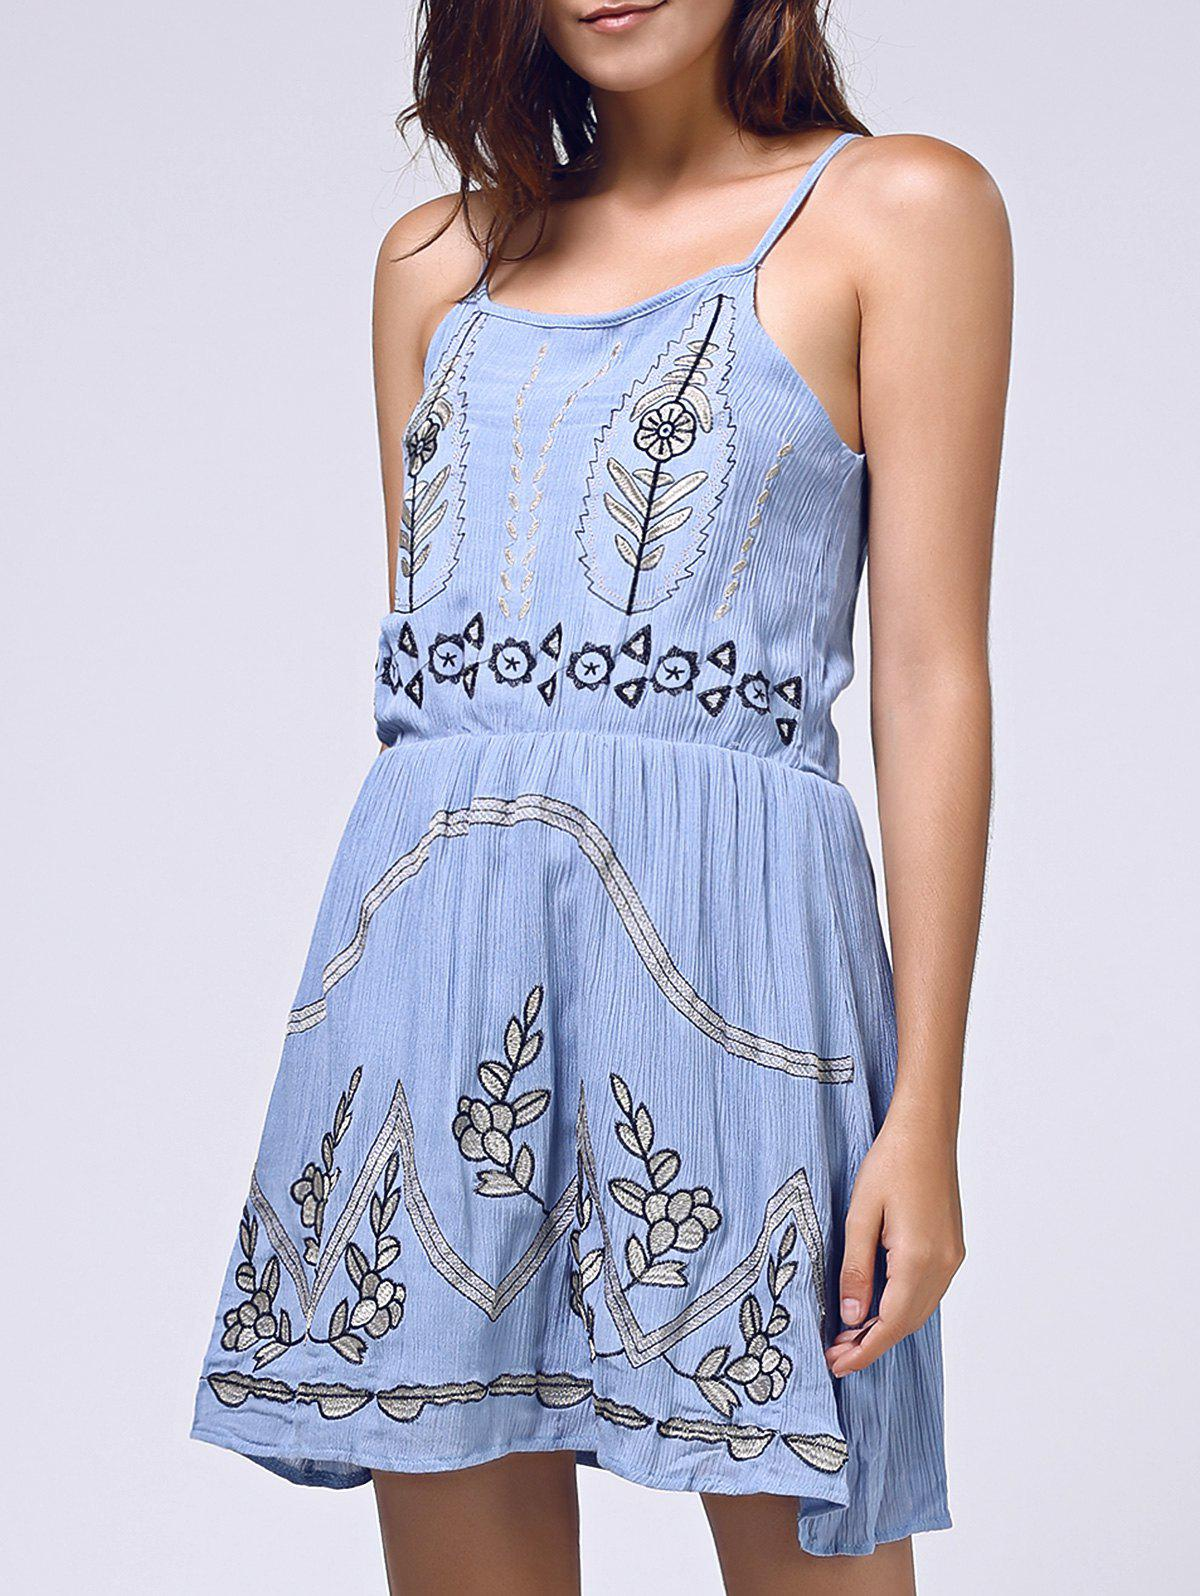 Ethnic Style Women's Spaghetti Straps Embroidered Dress - ICE BLUE ONE SIZE(FIT SIZE XS TO M)